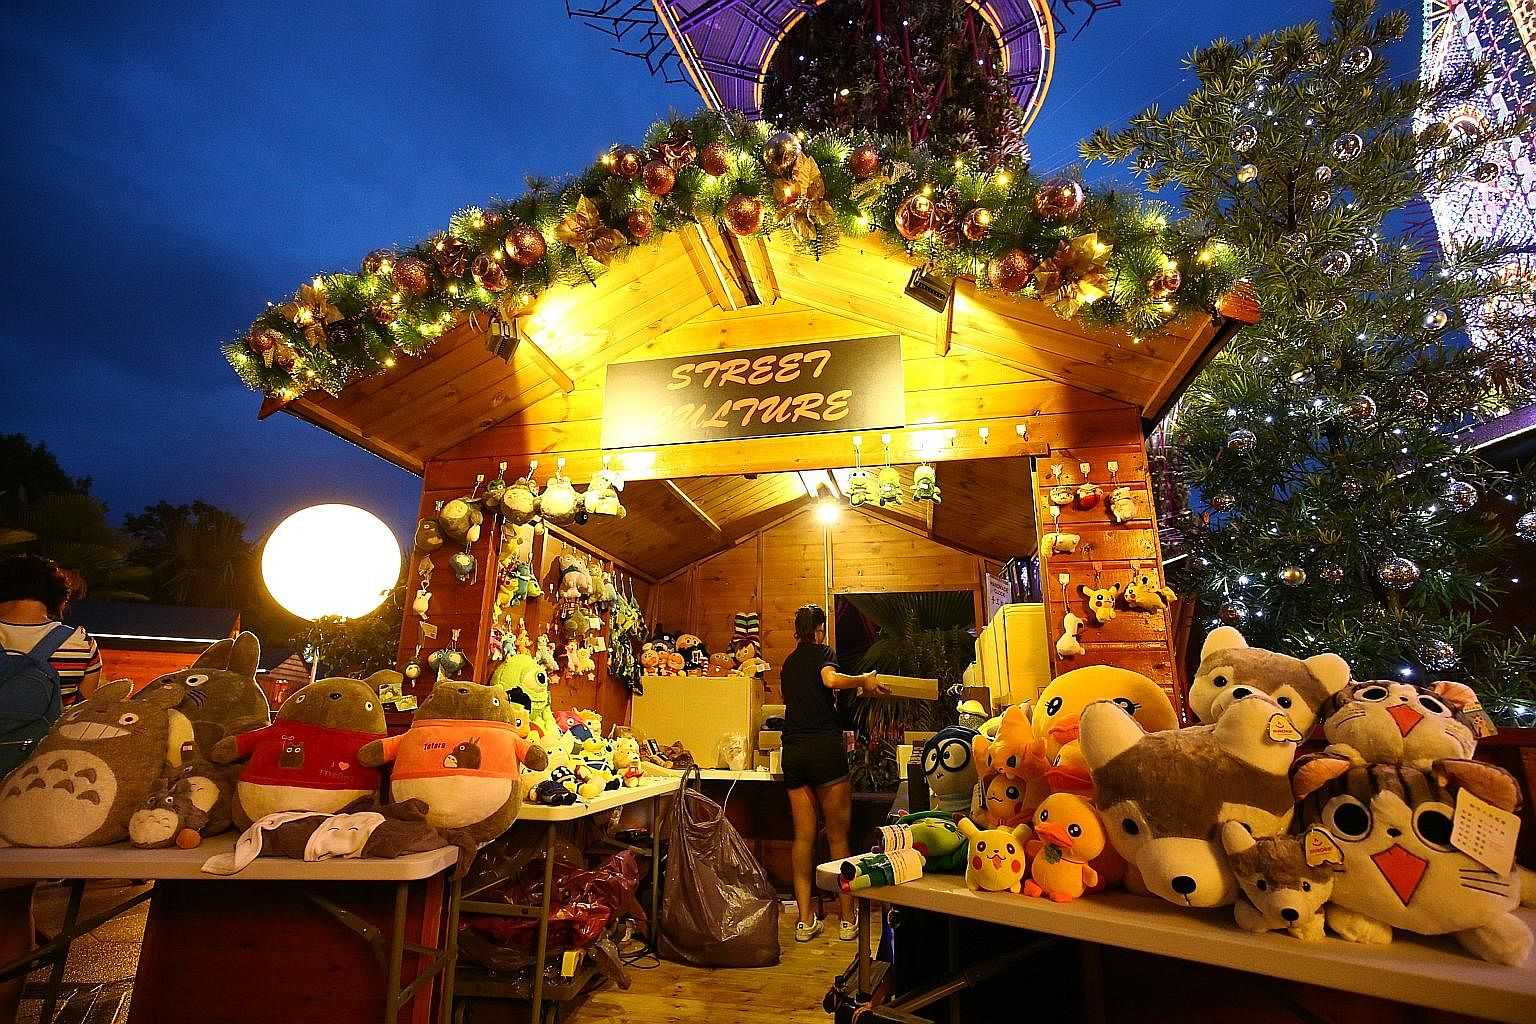 Christmas fairs with flair, Lifestyle News & Top Stories - The ...